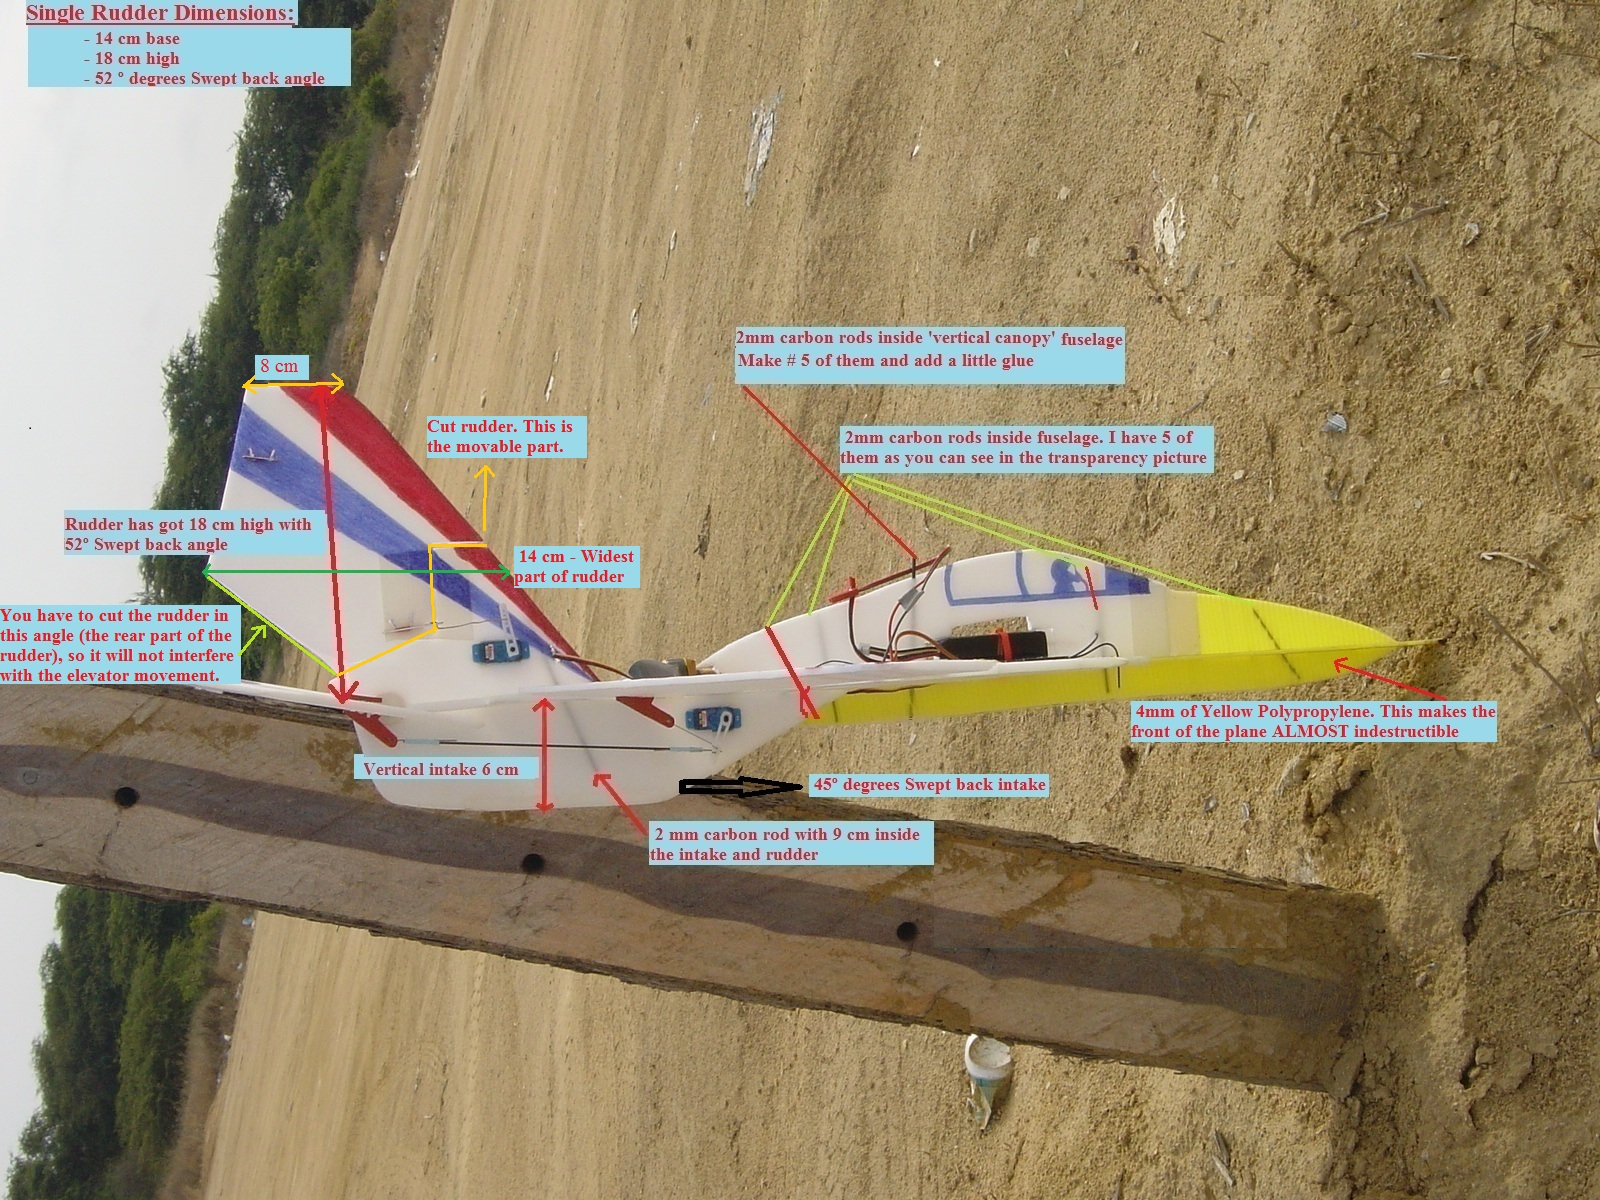 Click image for larger version  Name:SU 47 V2 JB Side View.jpg Views:15 Size:800.3 KB ID:1959028